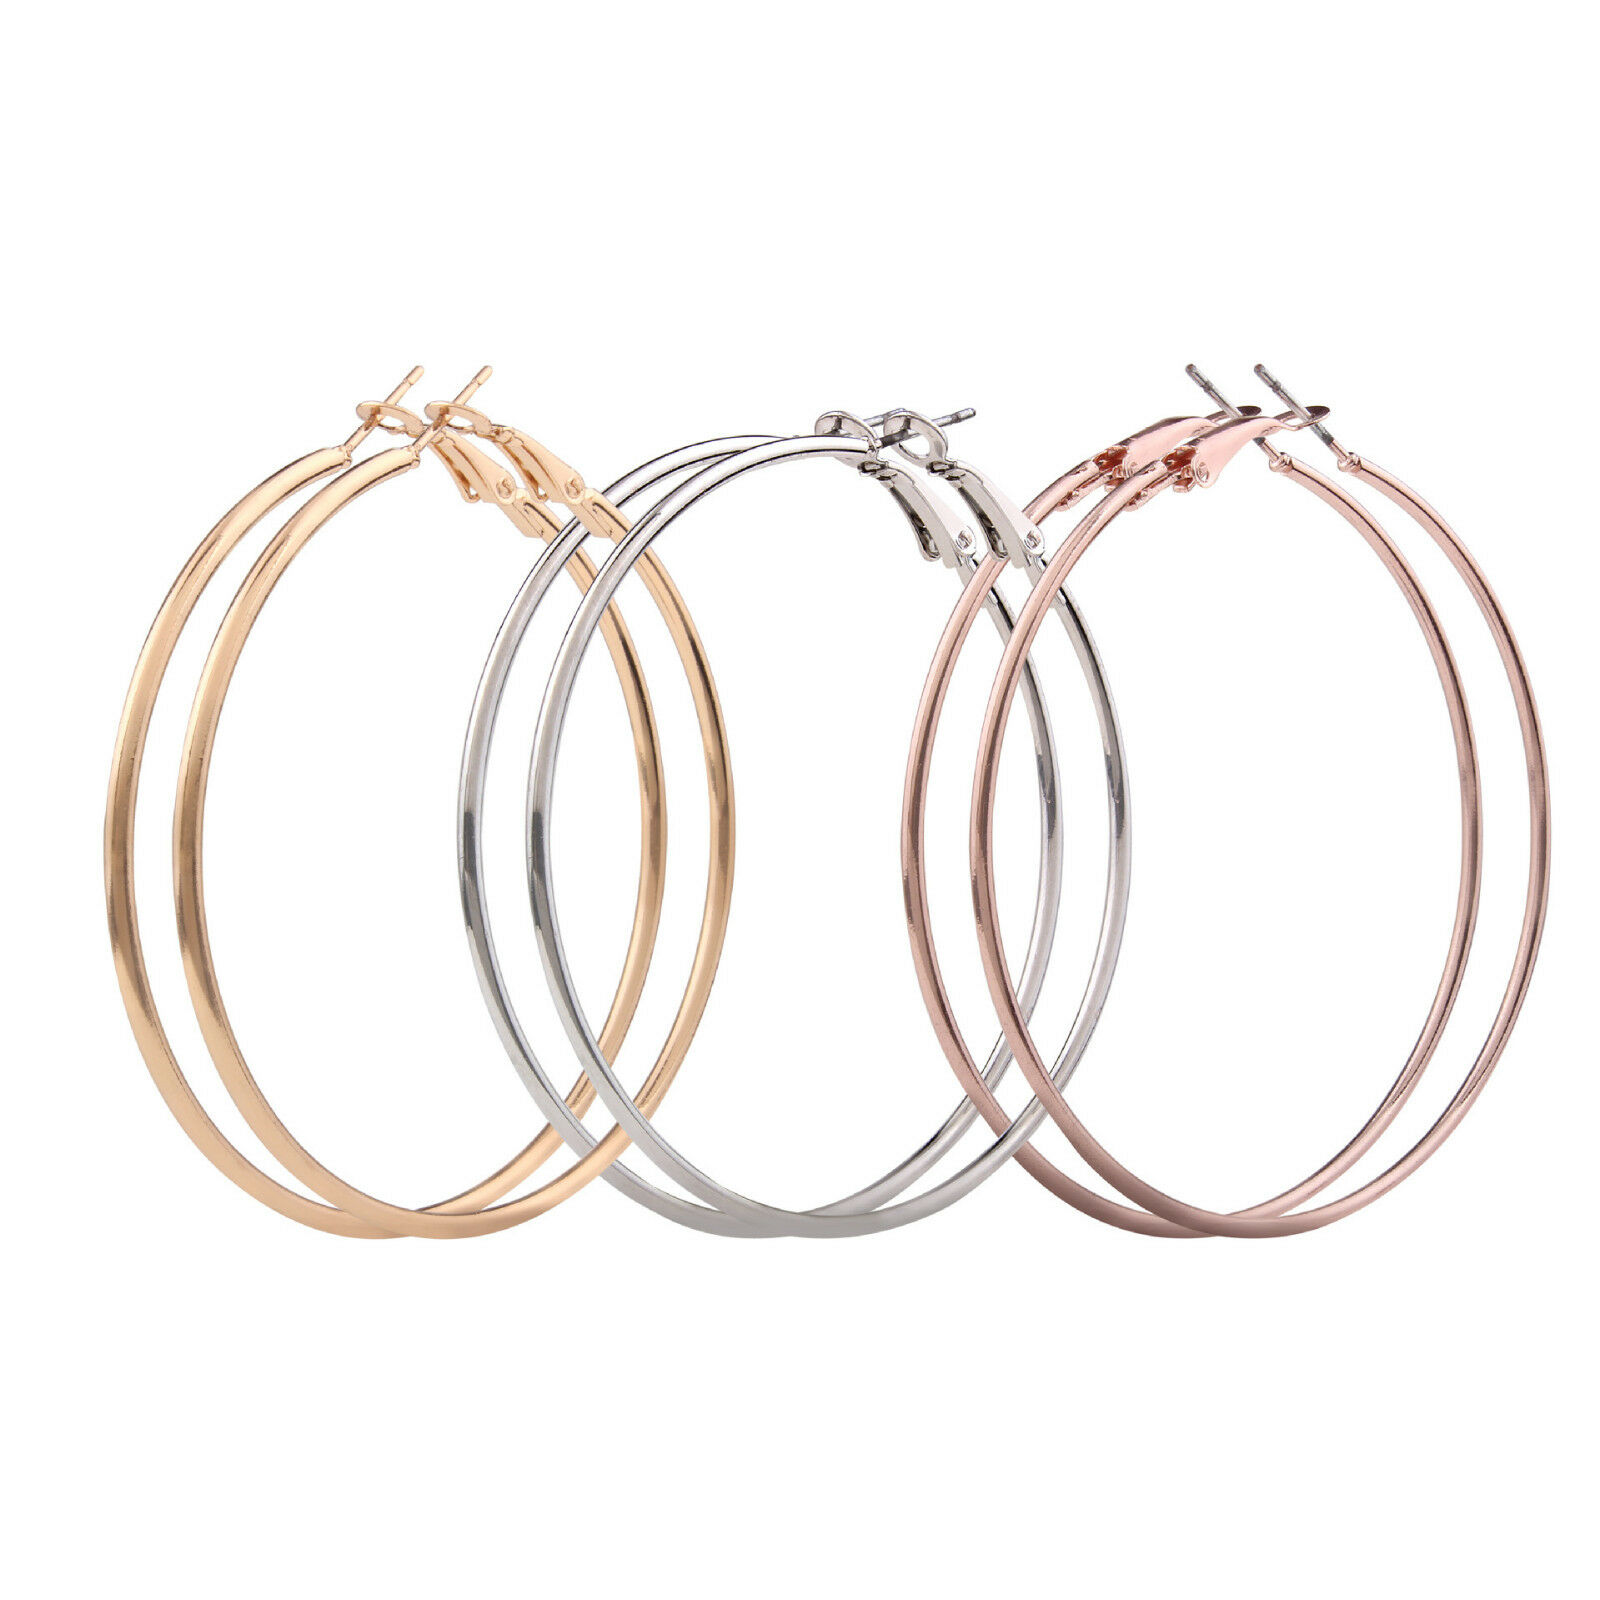 Las S Sterling Silver Gold Plated Smooth Large Hoop Earrings 4cm 9cm